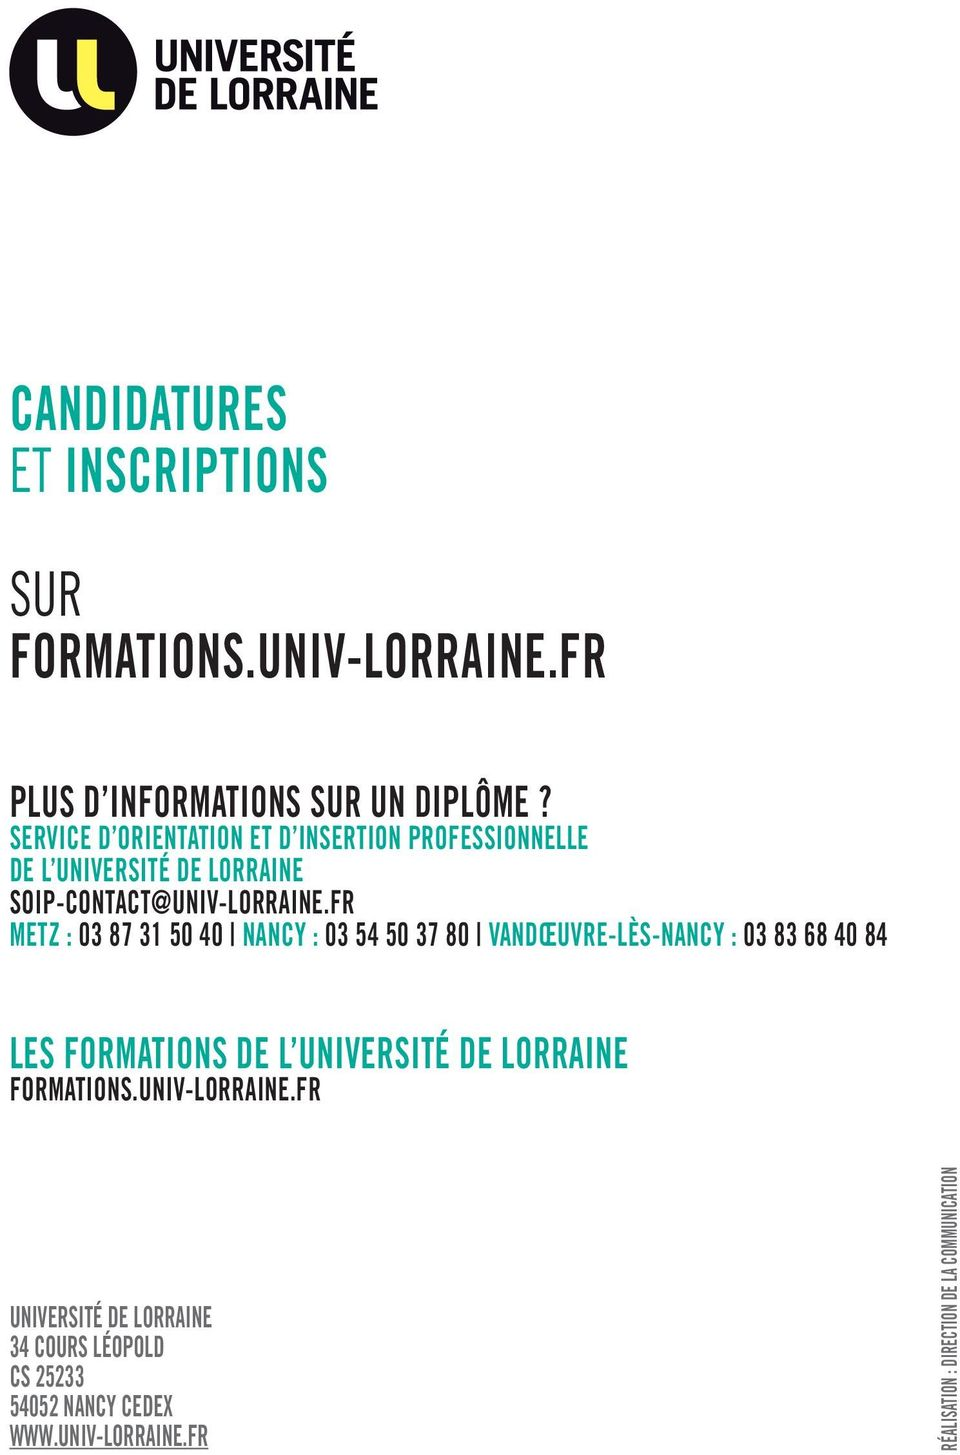 FR METZ : 03 87 31 50 40 NANCY : 03 54 50 37 80 VANDŒUVRE-LÈS-NANCY : 03 83 68 40 84 LES FORMATIONS DE L UNIVERSITÉ DE